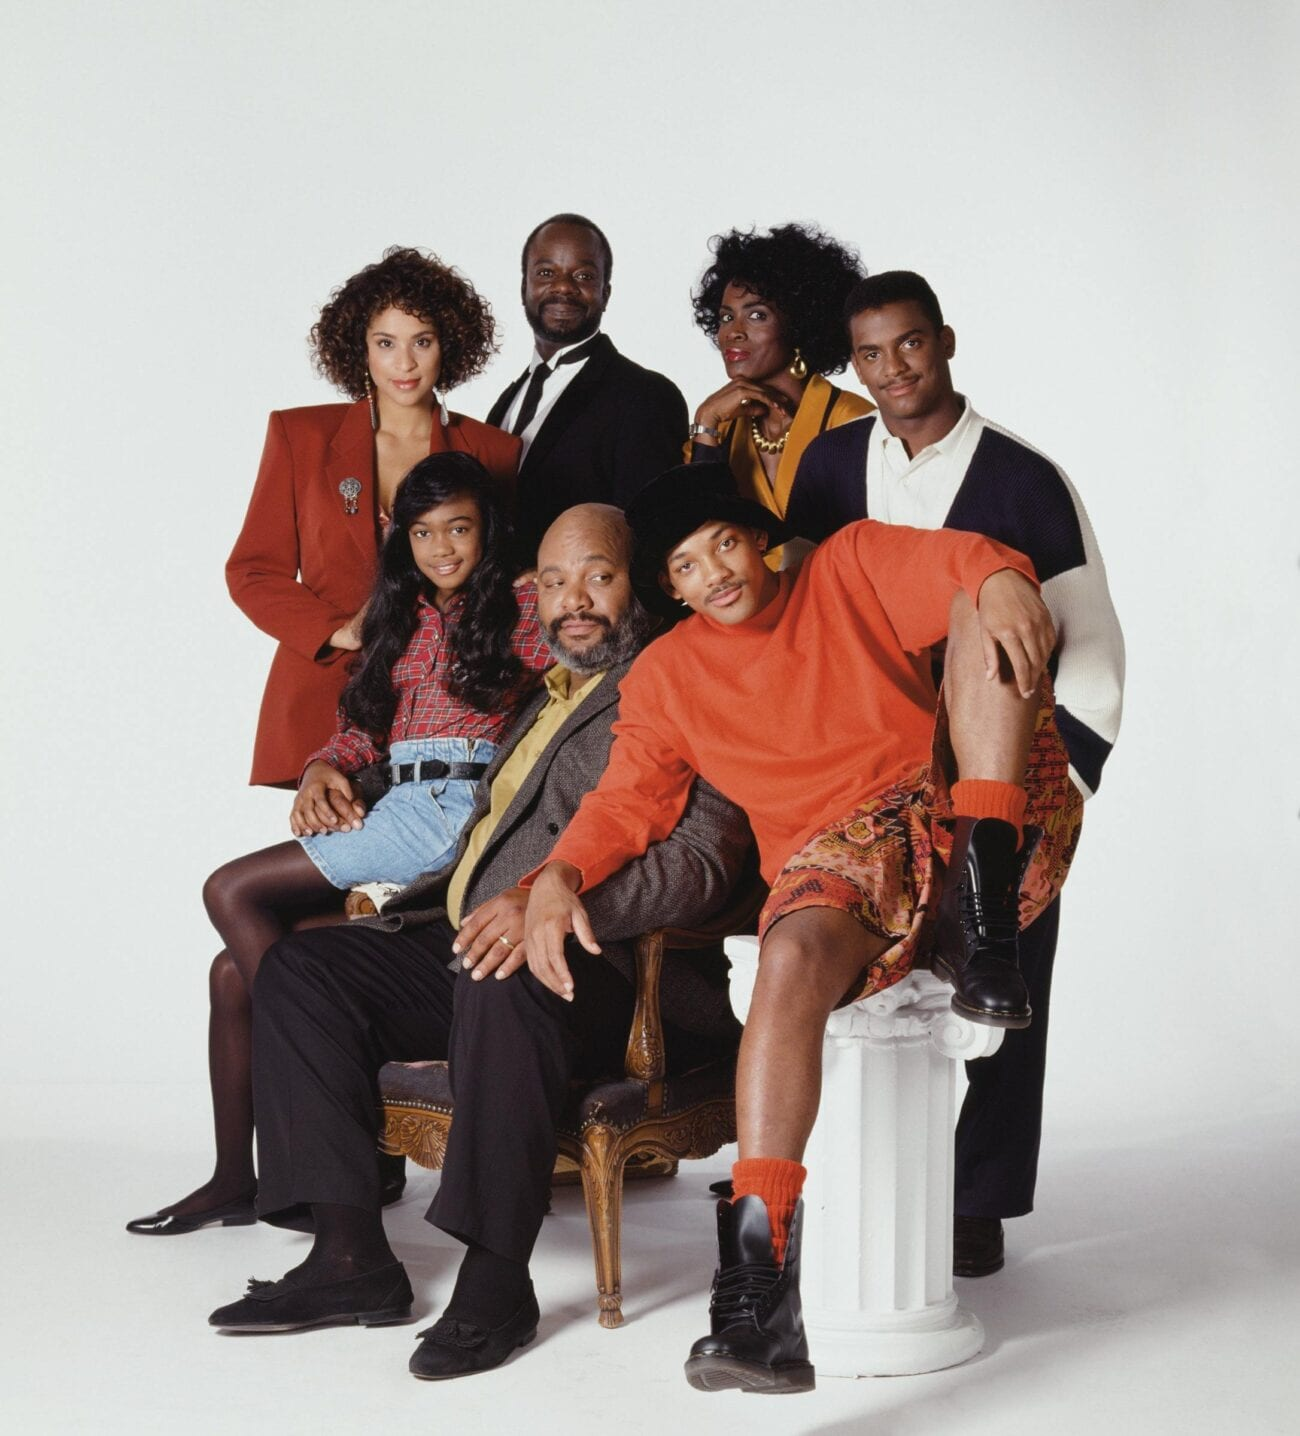 Peacock is rebooting everything about the 80s and 90s, and the latest casualty is 'Fresh Prince of Bel-Air'. The beloved Will Smith comedy is up for reboot.